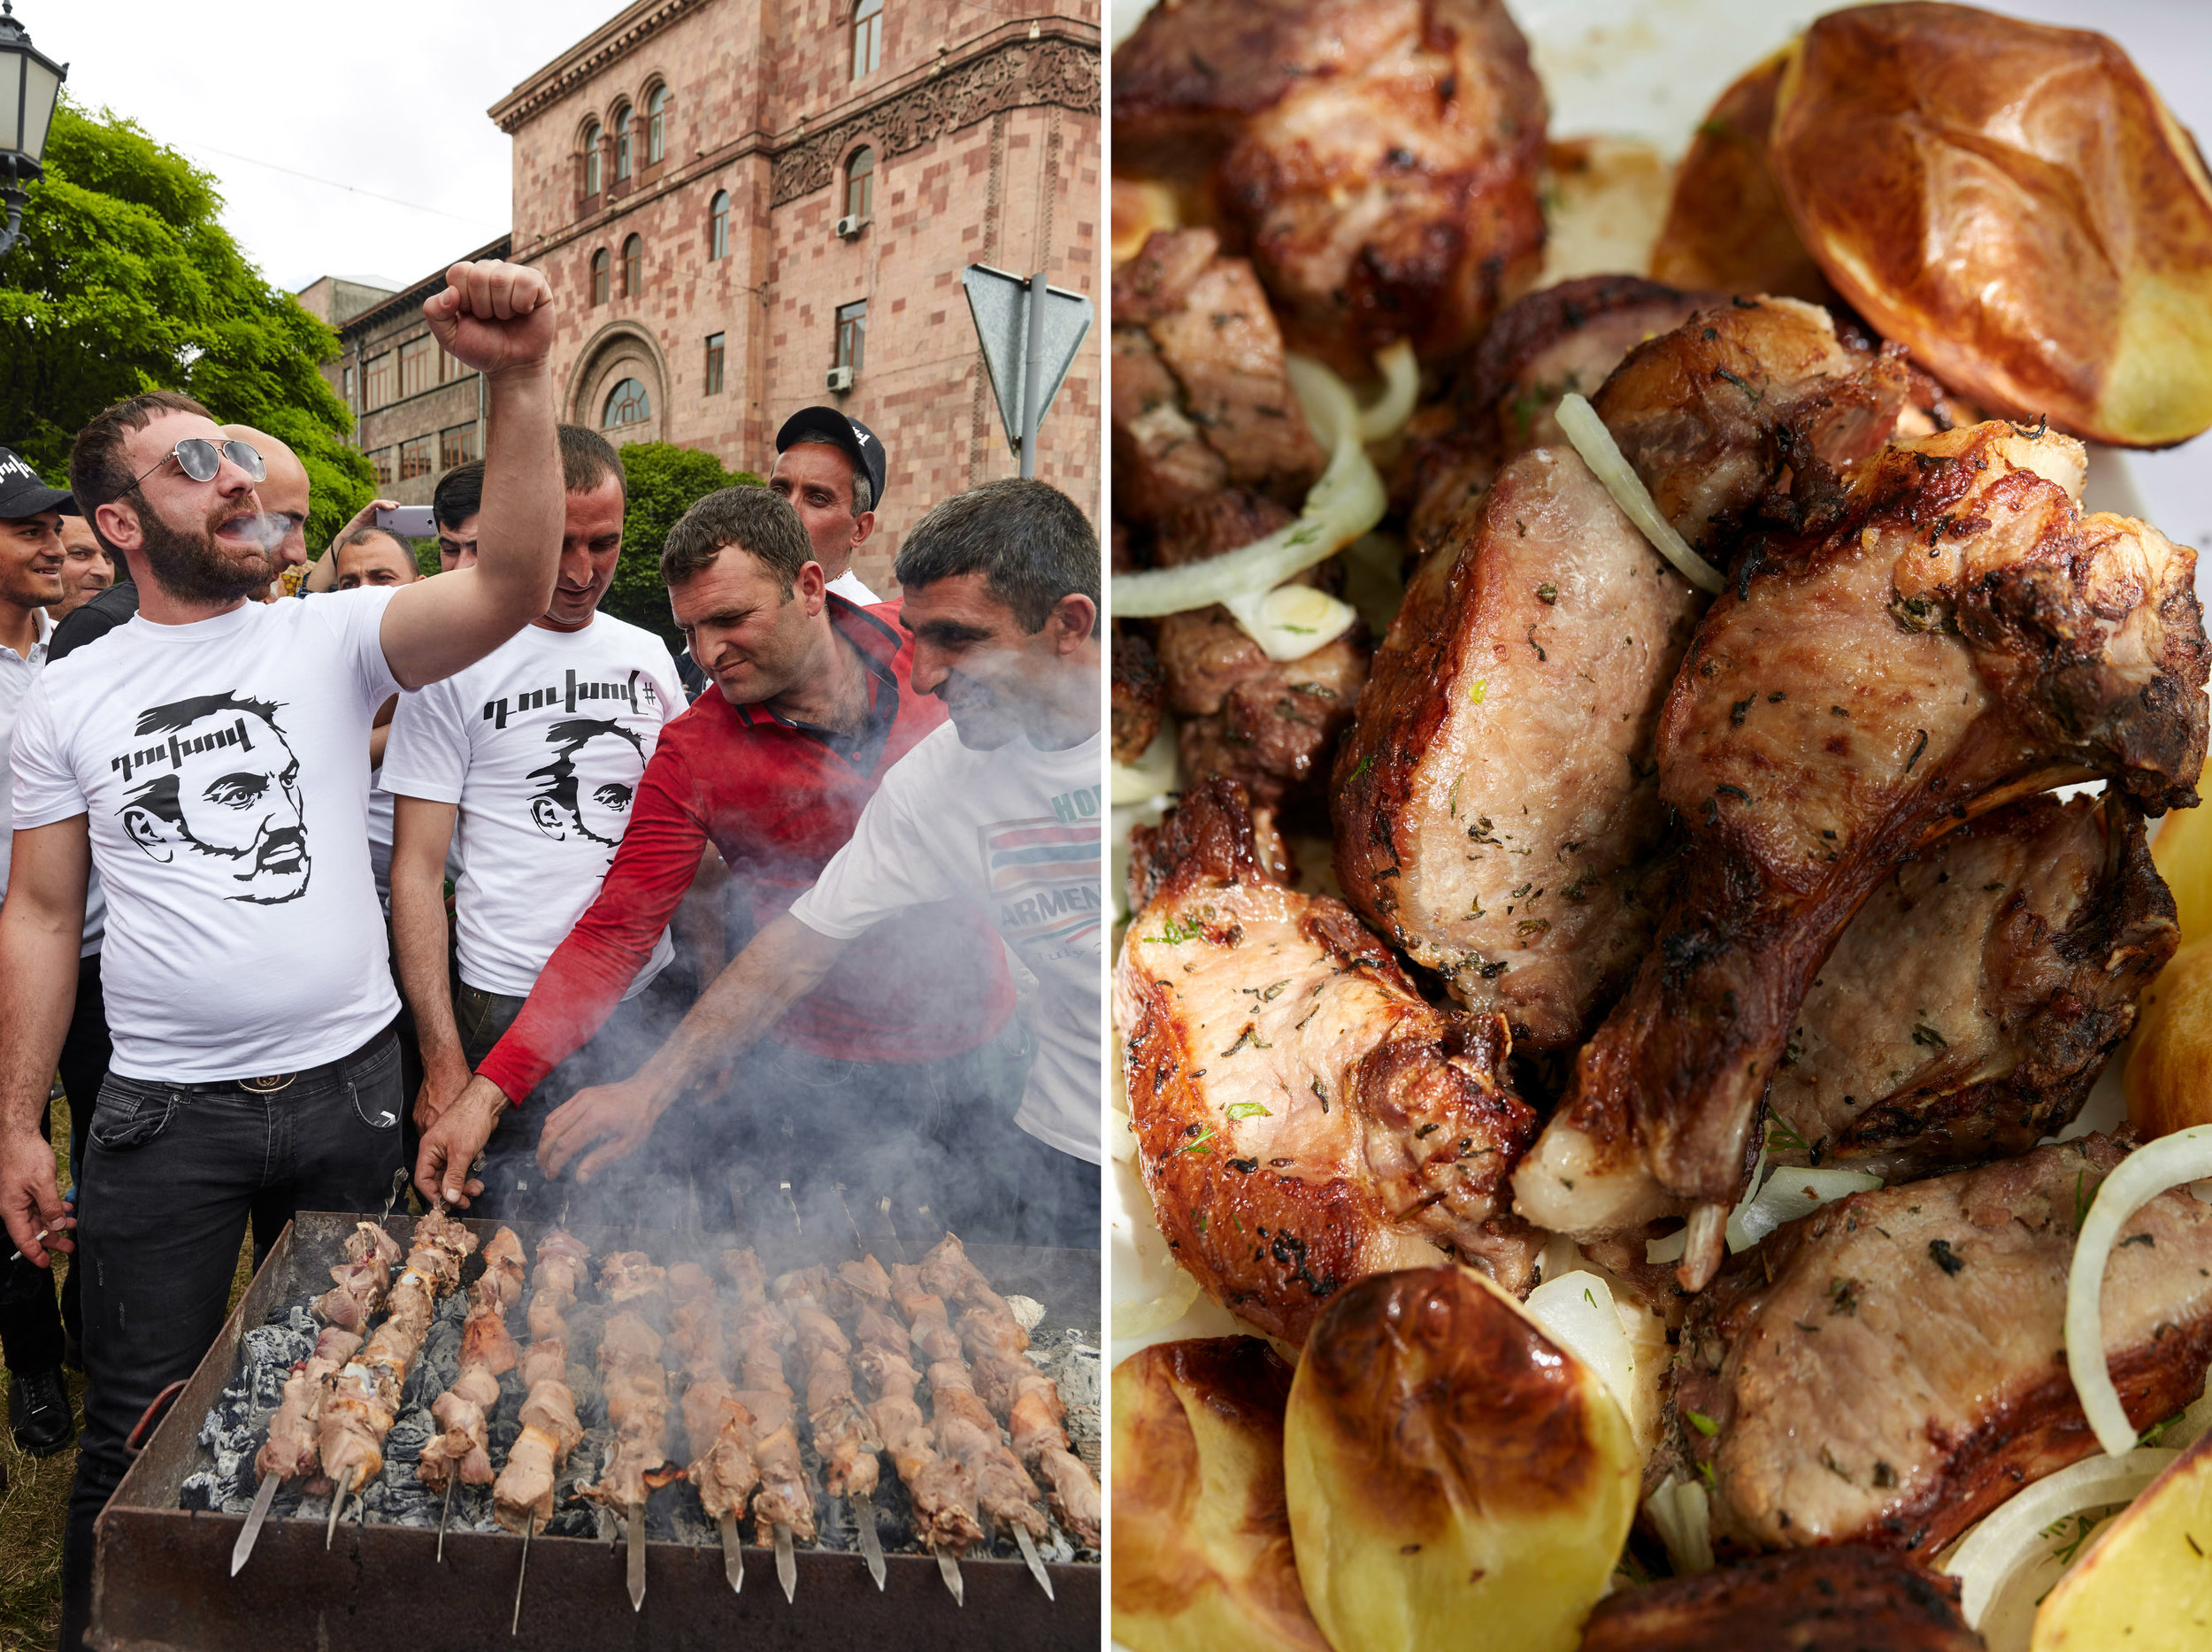 Skewers of meat on a mangal as revelers celebrate Nikol Pashinyan's election victory, left, and Qefilyan's pork khorovats, right.